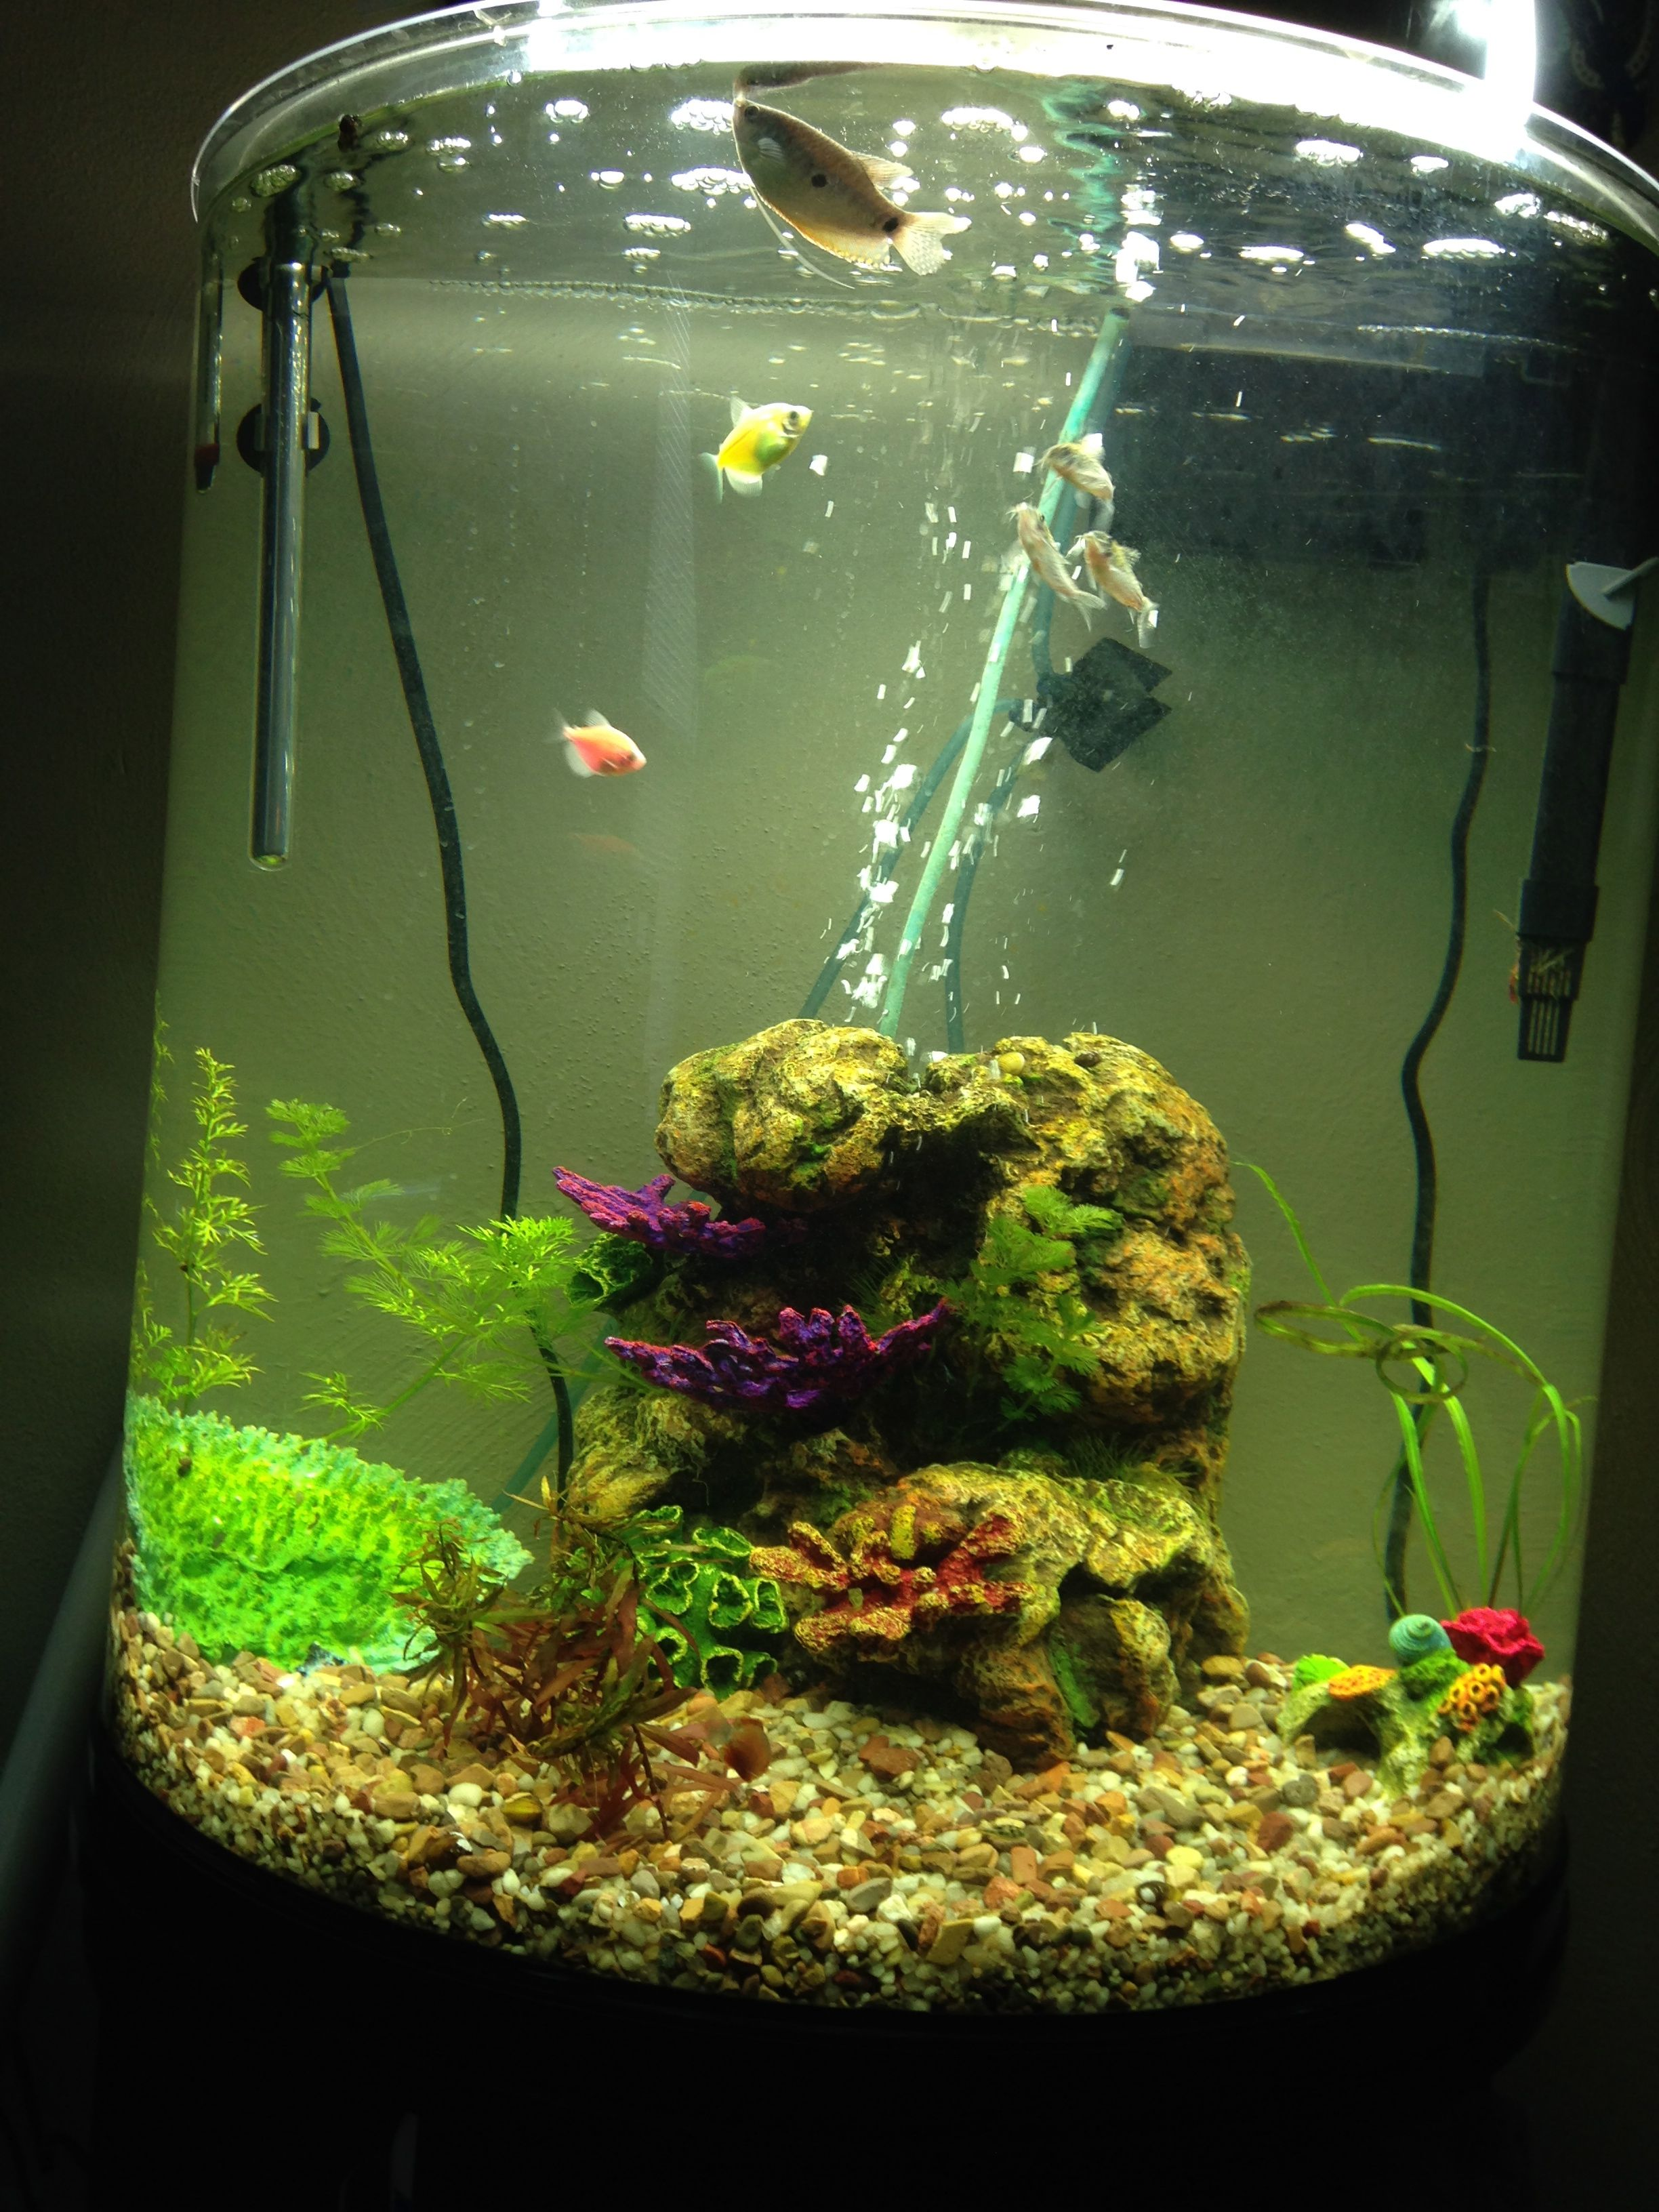 Freshwater fish tank live plants - Using Live Plants In Your Home Aquarium